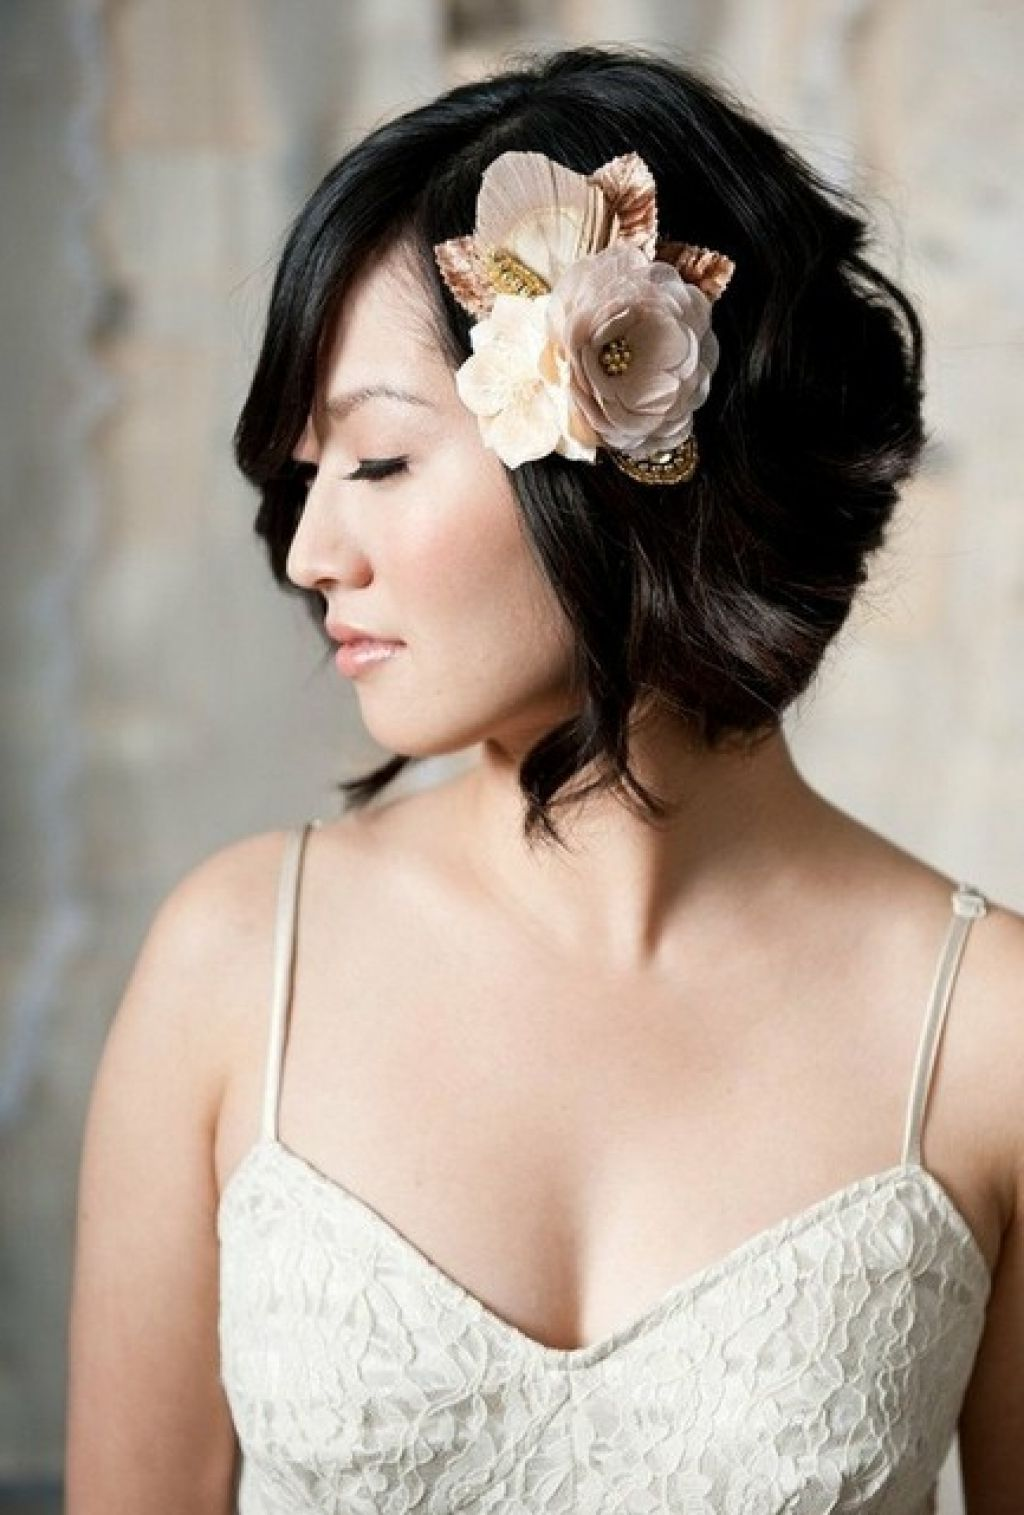 15 Walk-Down-the-Aisle-Ready Wedding Hairstyles for ShortHair picture